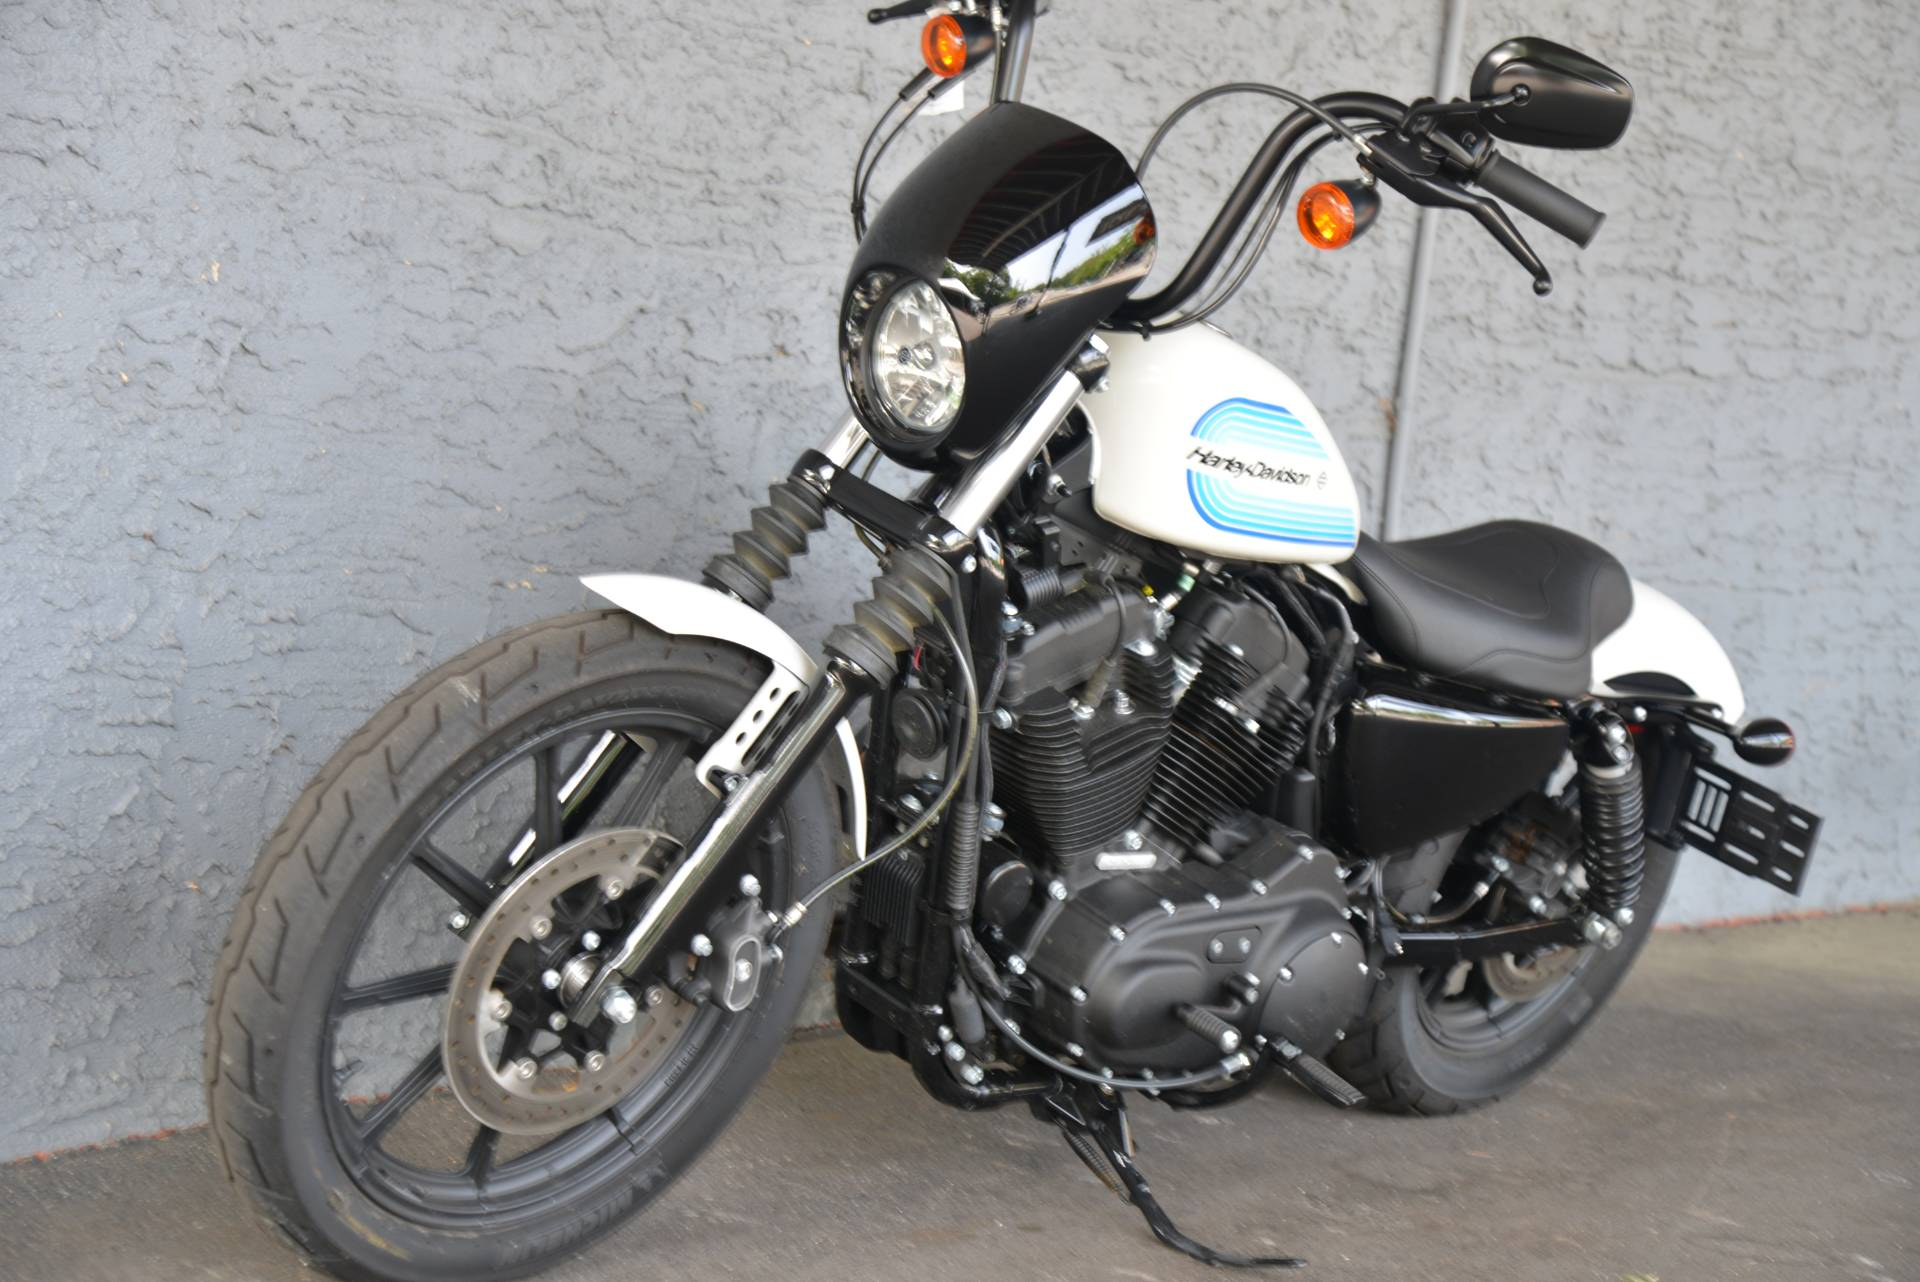 2019 Harley-Davidson IRON 1200 in Lakewood, New Jersey - Photo 11